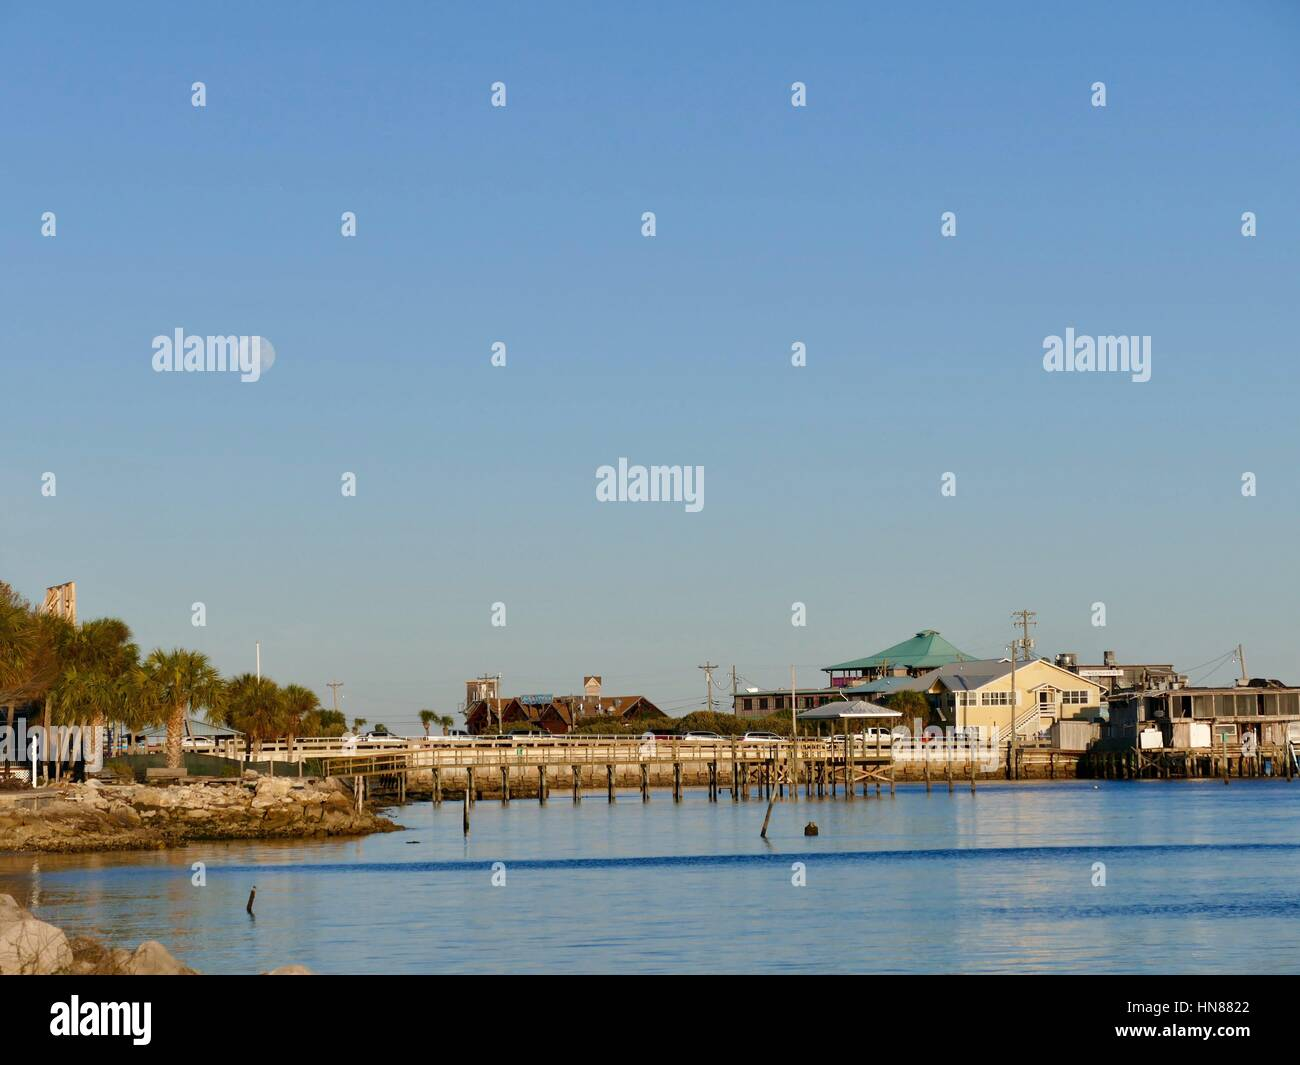 Cedar Key, Florida, USA, 9th Feb, 2017. While much of the US was battling severe winter weather, it was a perfect Stock Photo